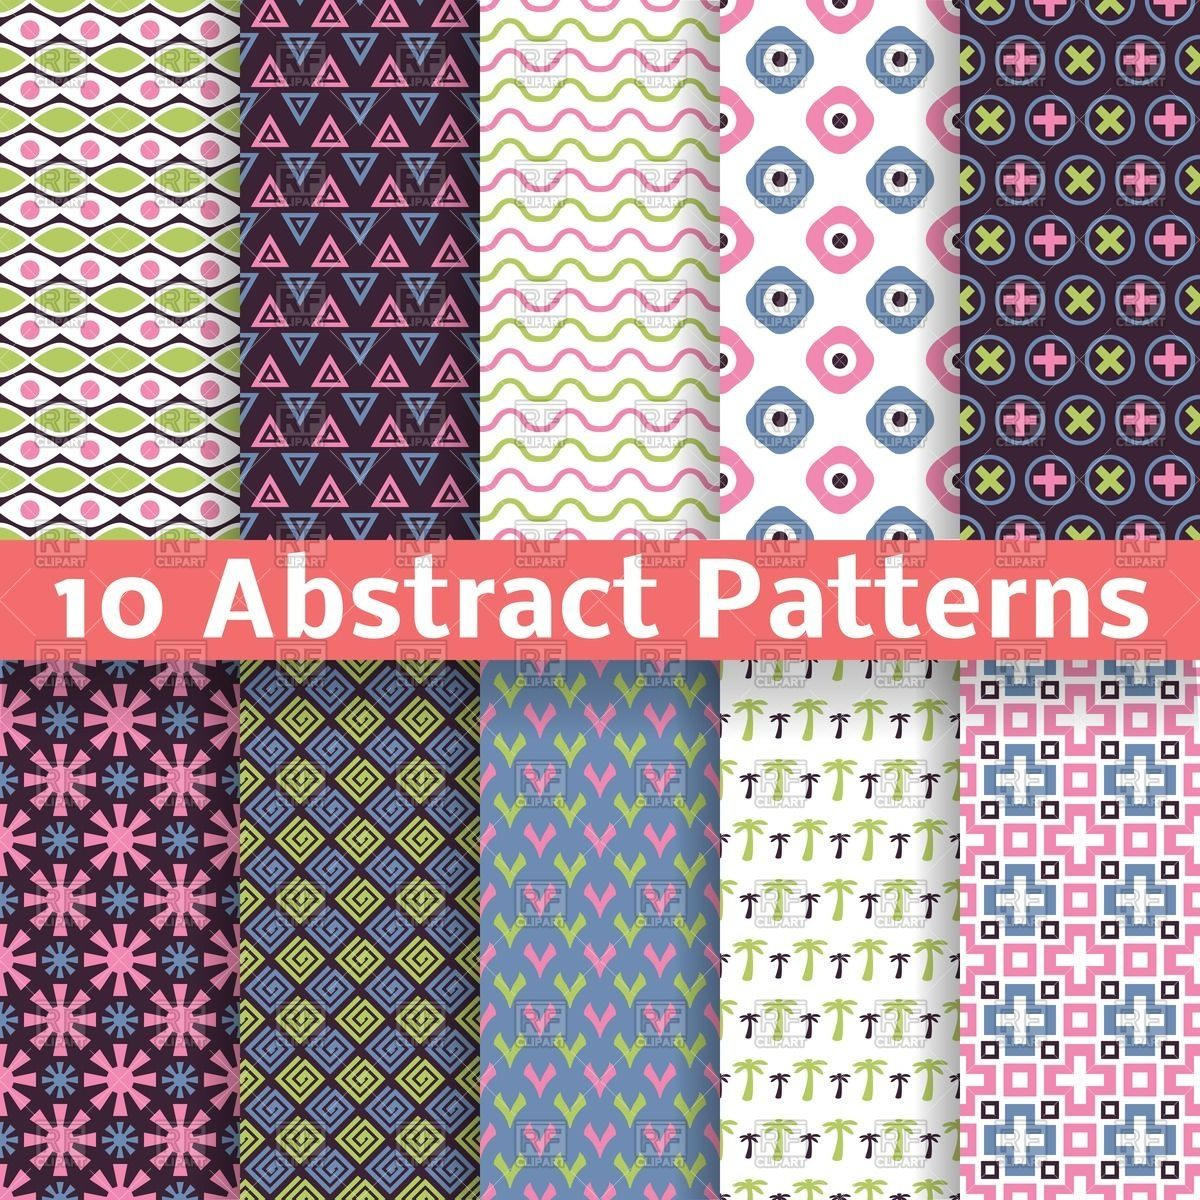 Geometric abstract patterns in vintage style vector image u vector